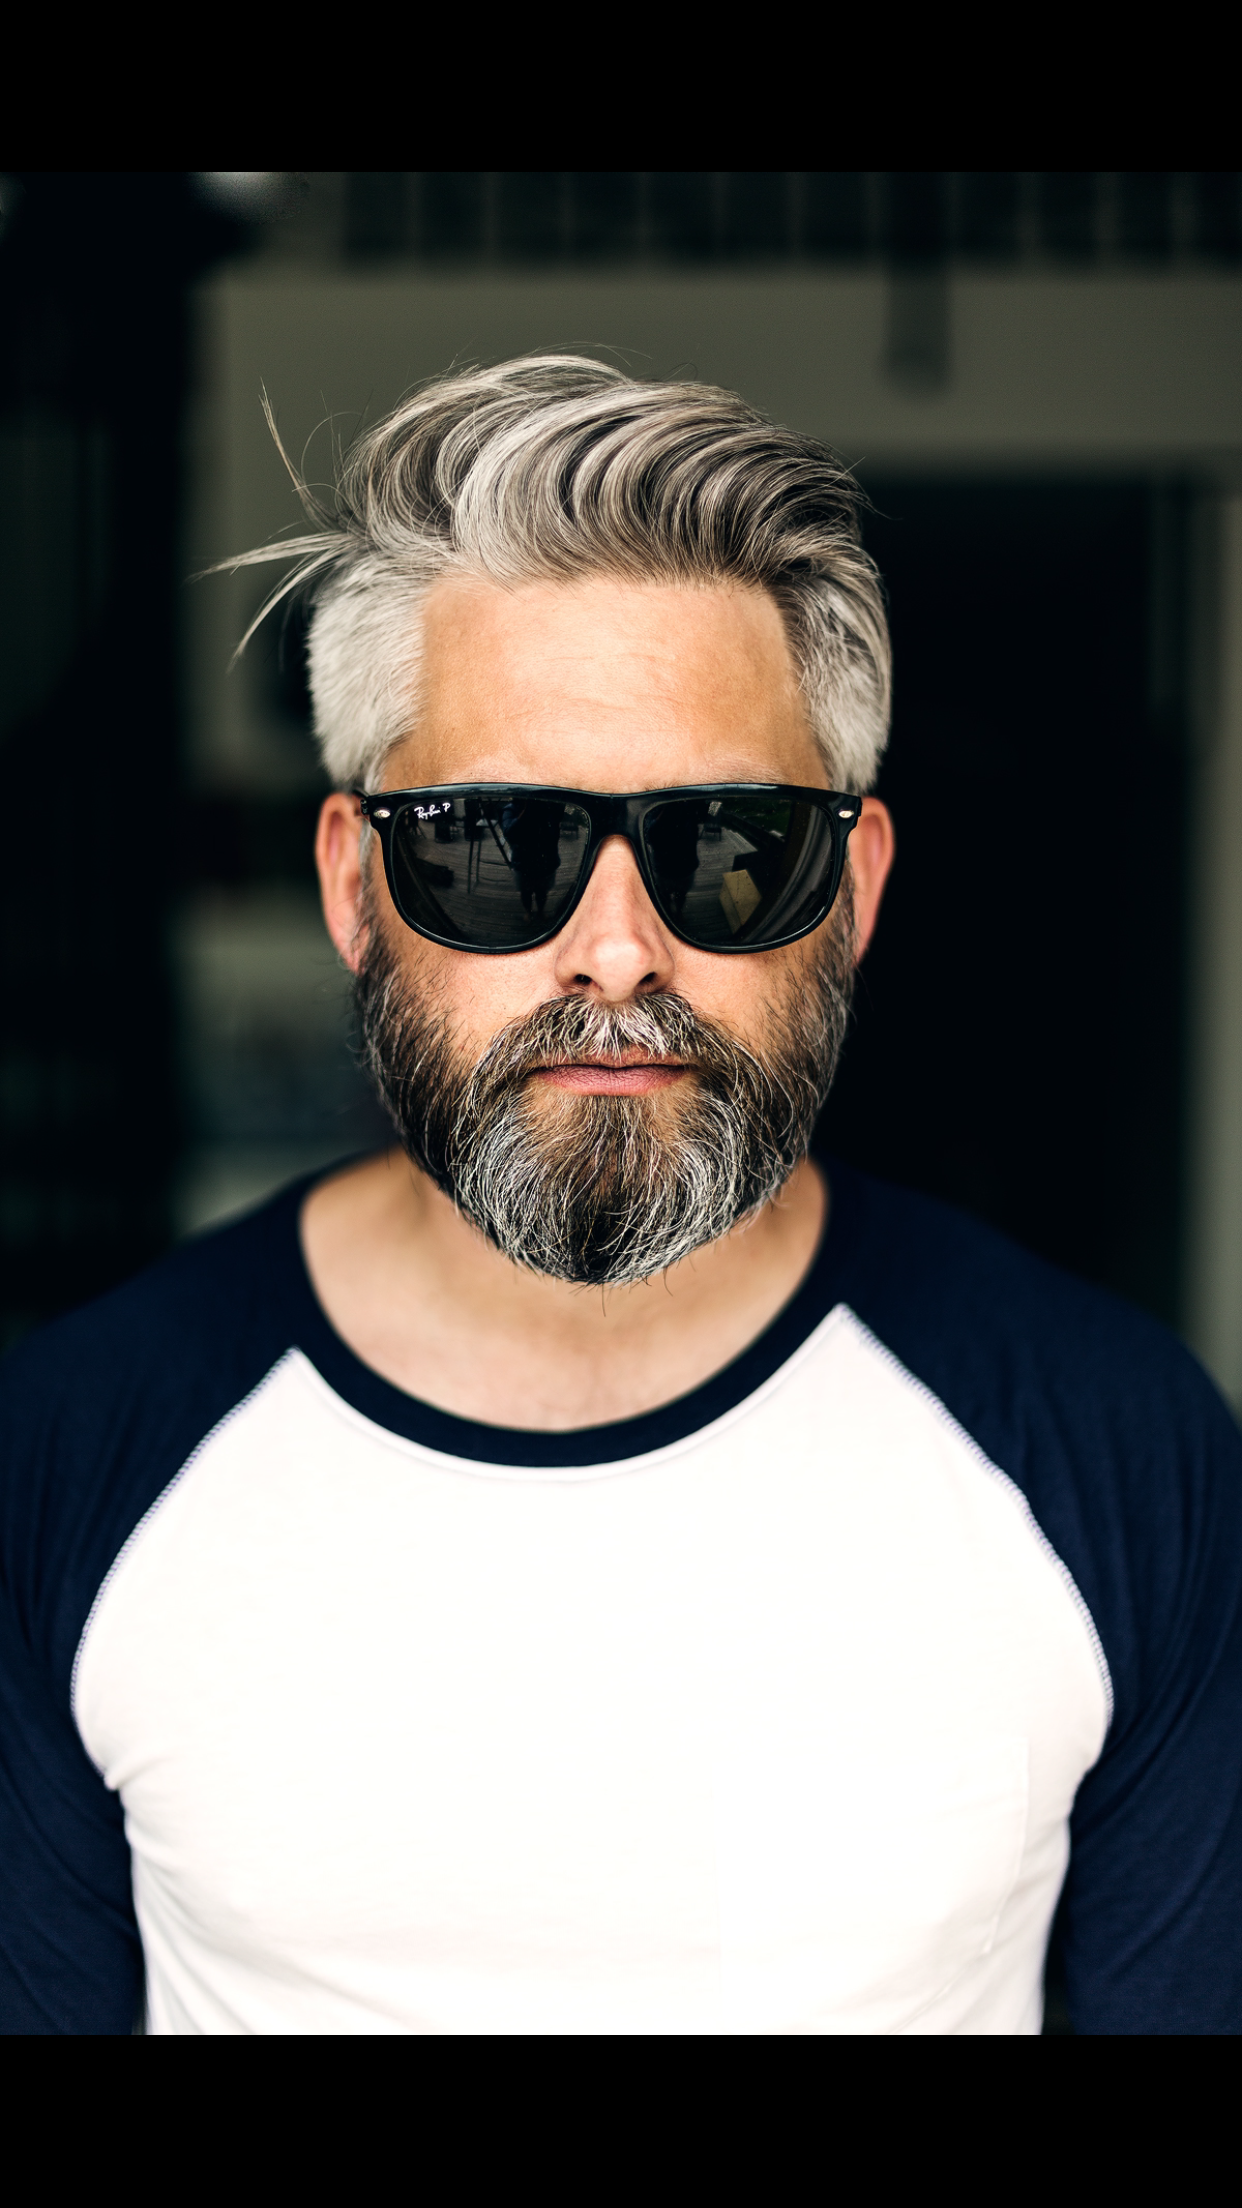 Model swedish grey hair silverfox mens style beard grooming silver male men's apperal men's ...